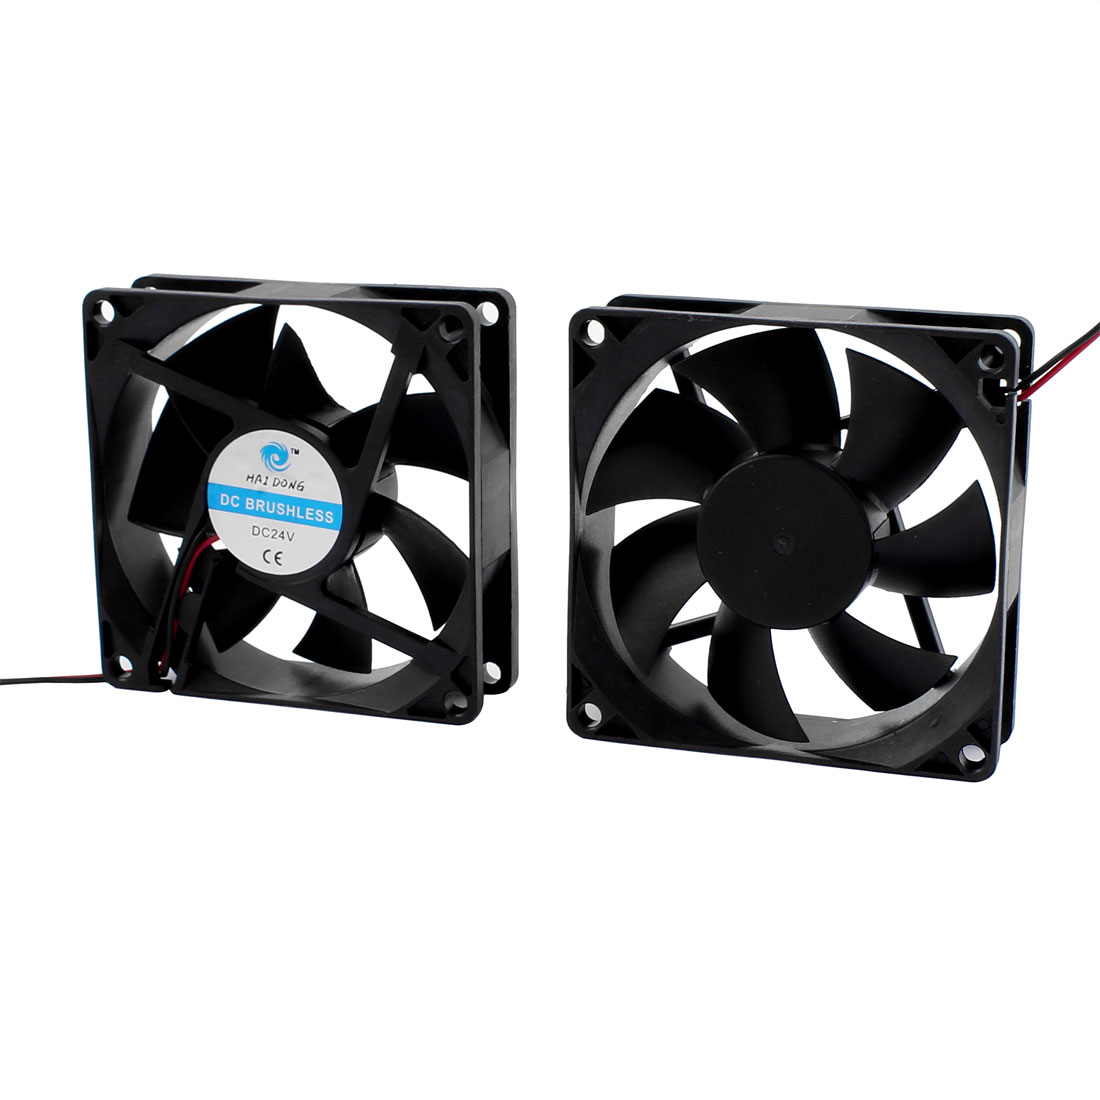 2 Pcs DC 24V 80 x 80 x 25mm Brushless 9 Vanes Cooling Cooler Case Fan